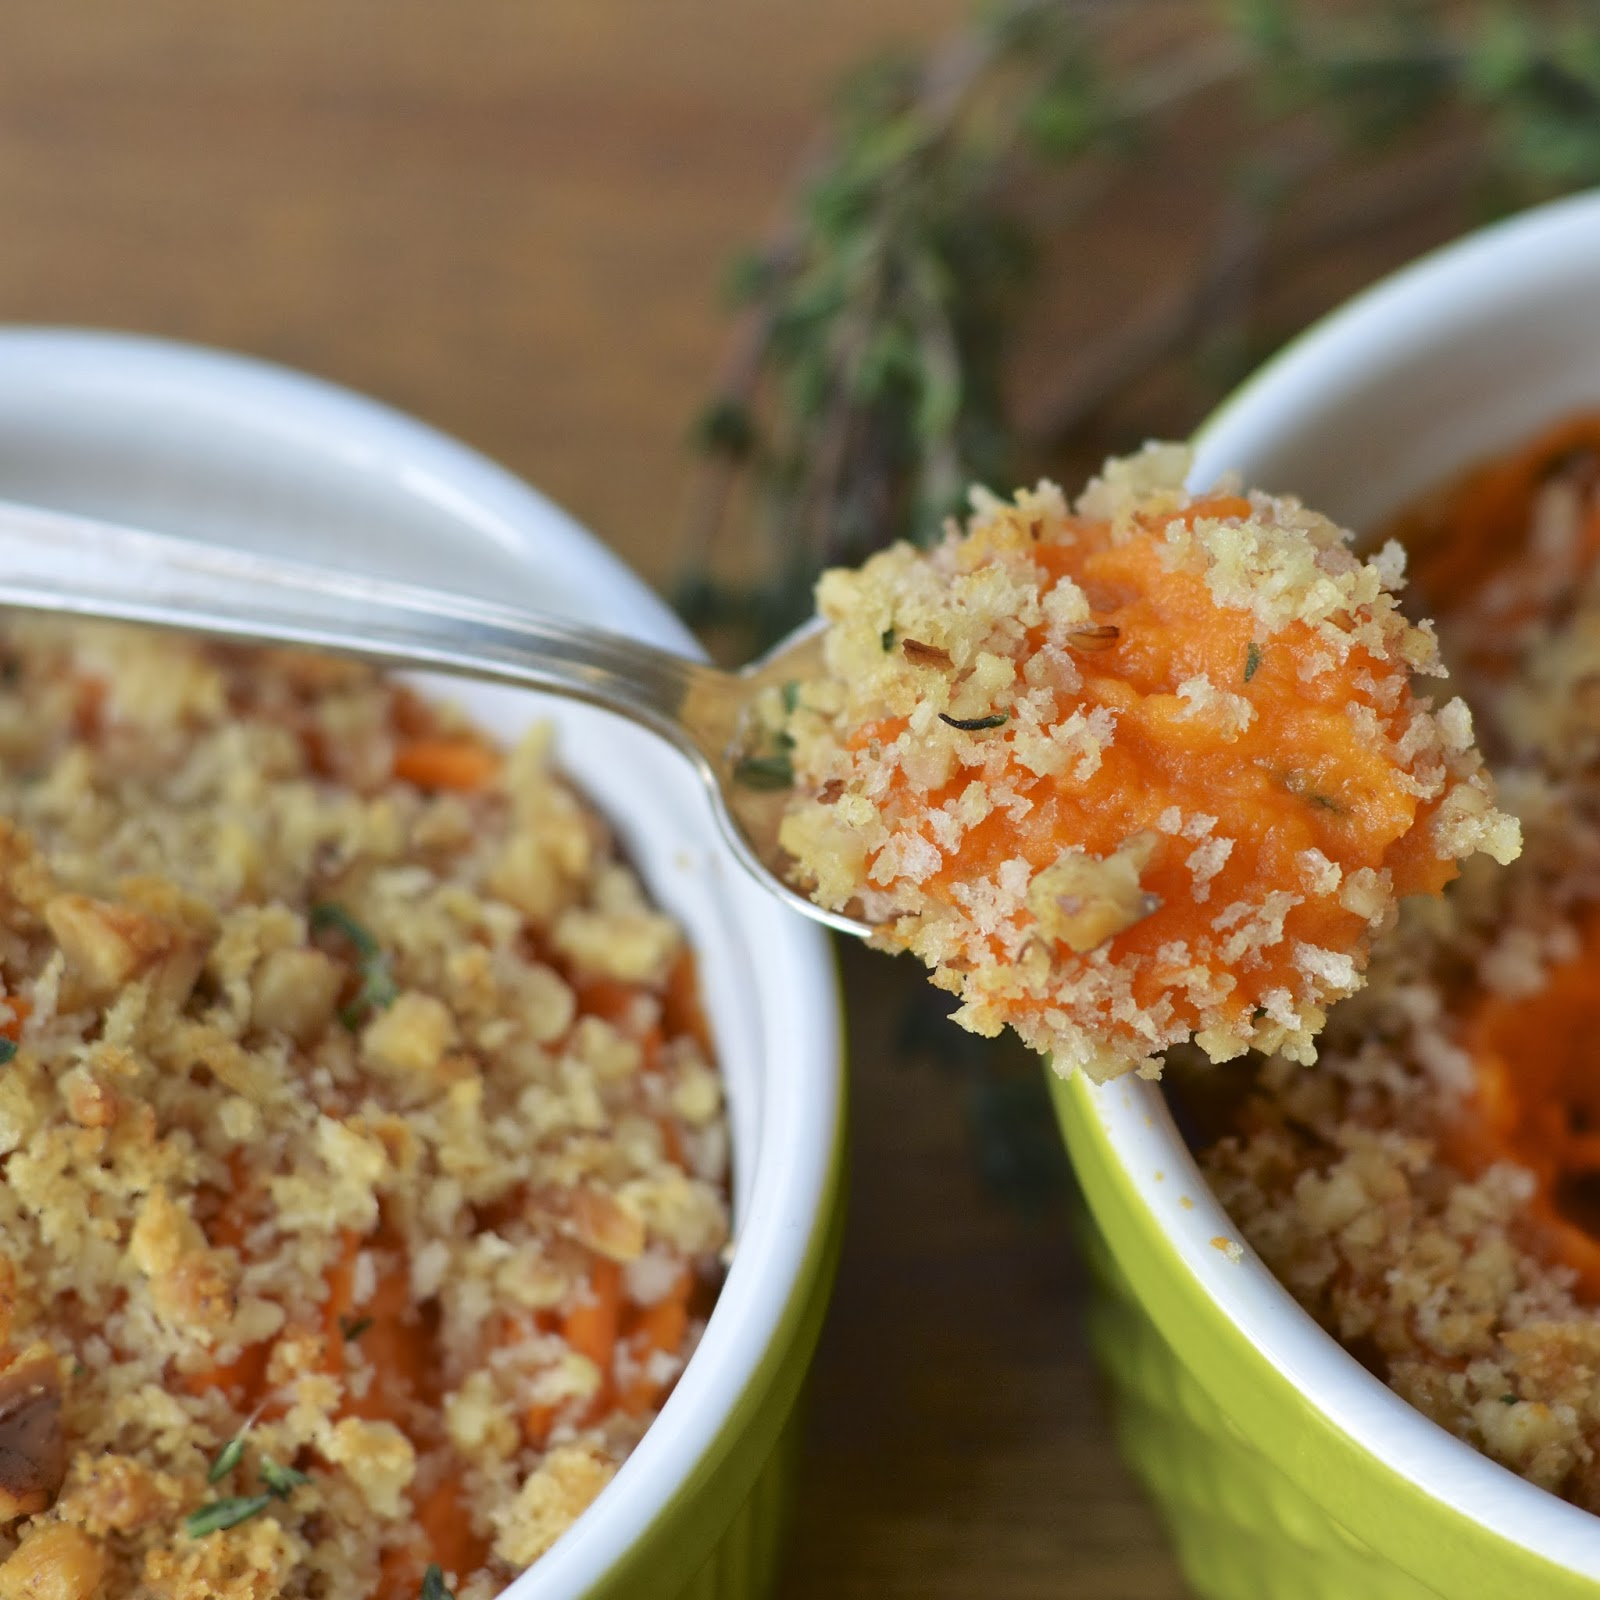 Savory Sweet Potato Casserole with Toasted Walnuts | Virtually ...